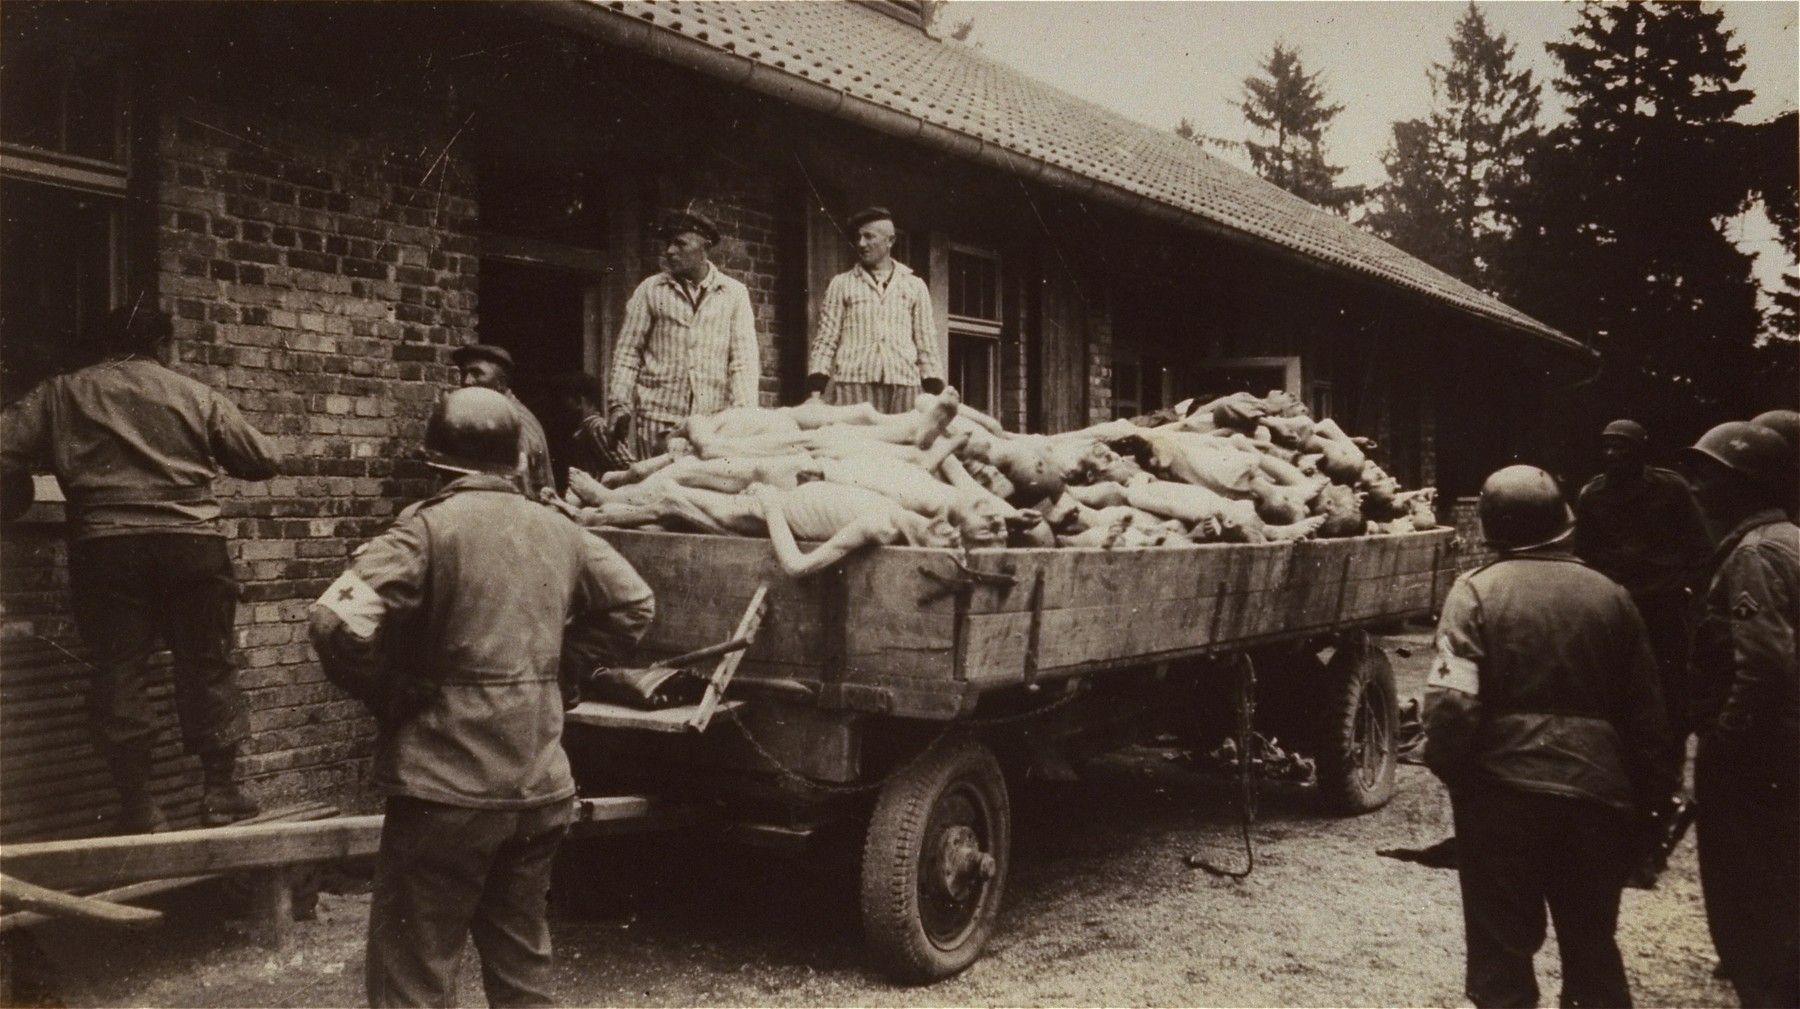 American soldiers look on as survivors in Dachau remove bodies from the cellar of the crematorium.